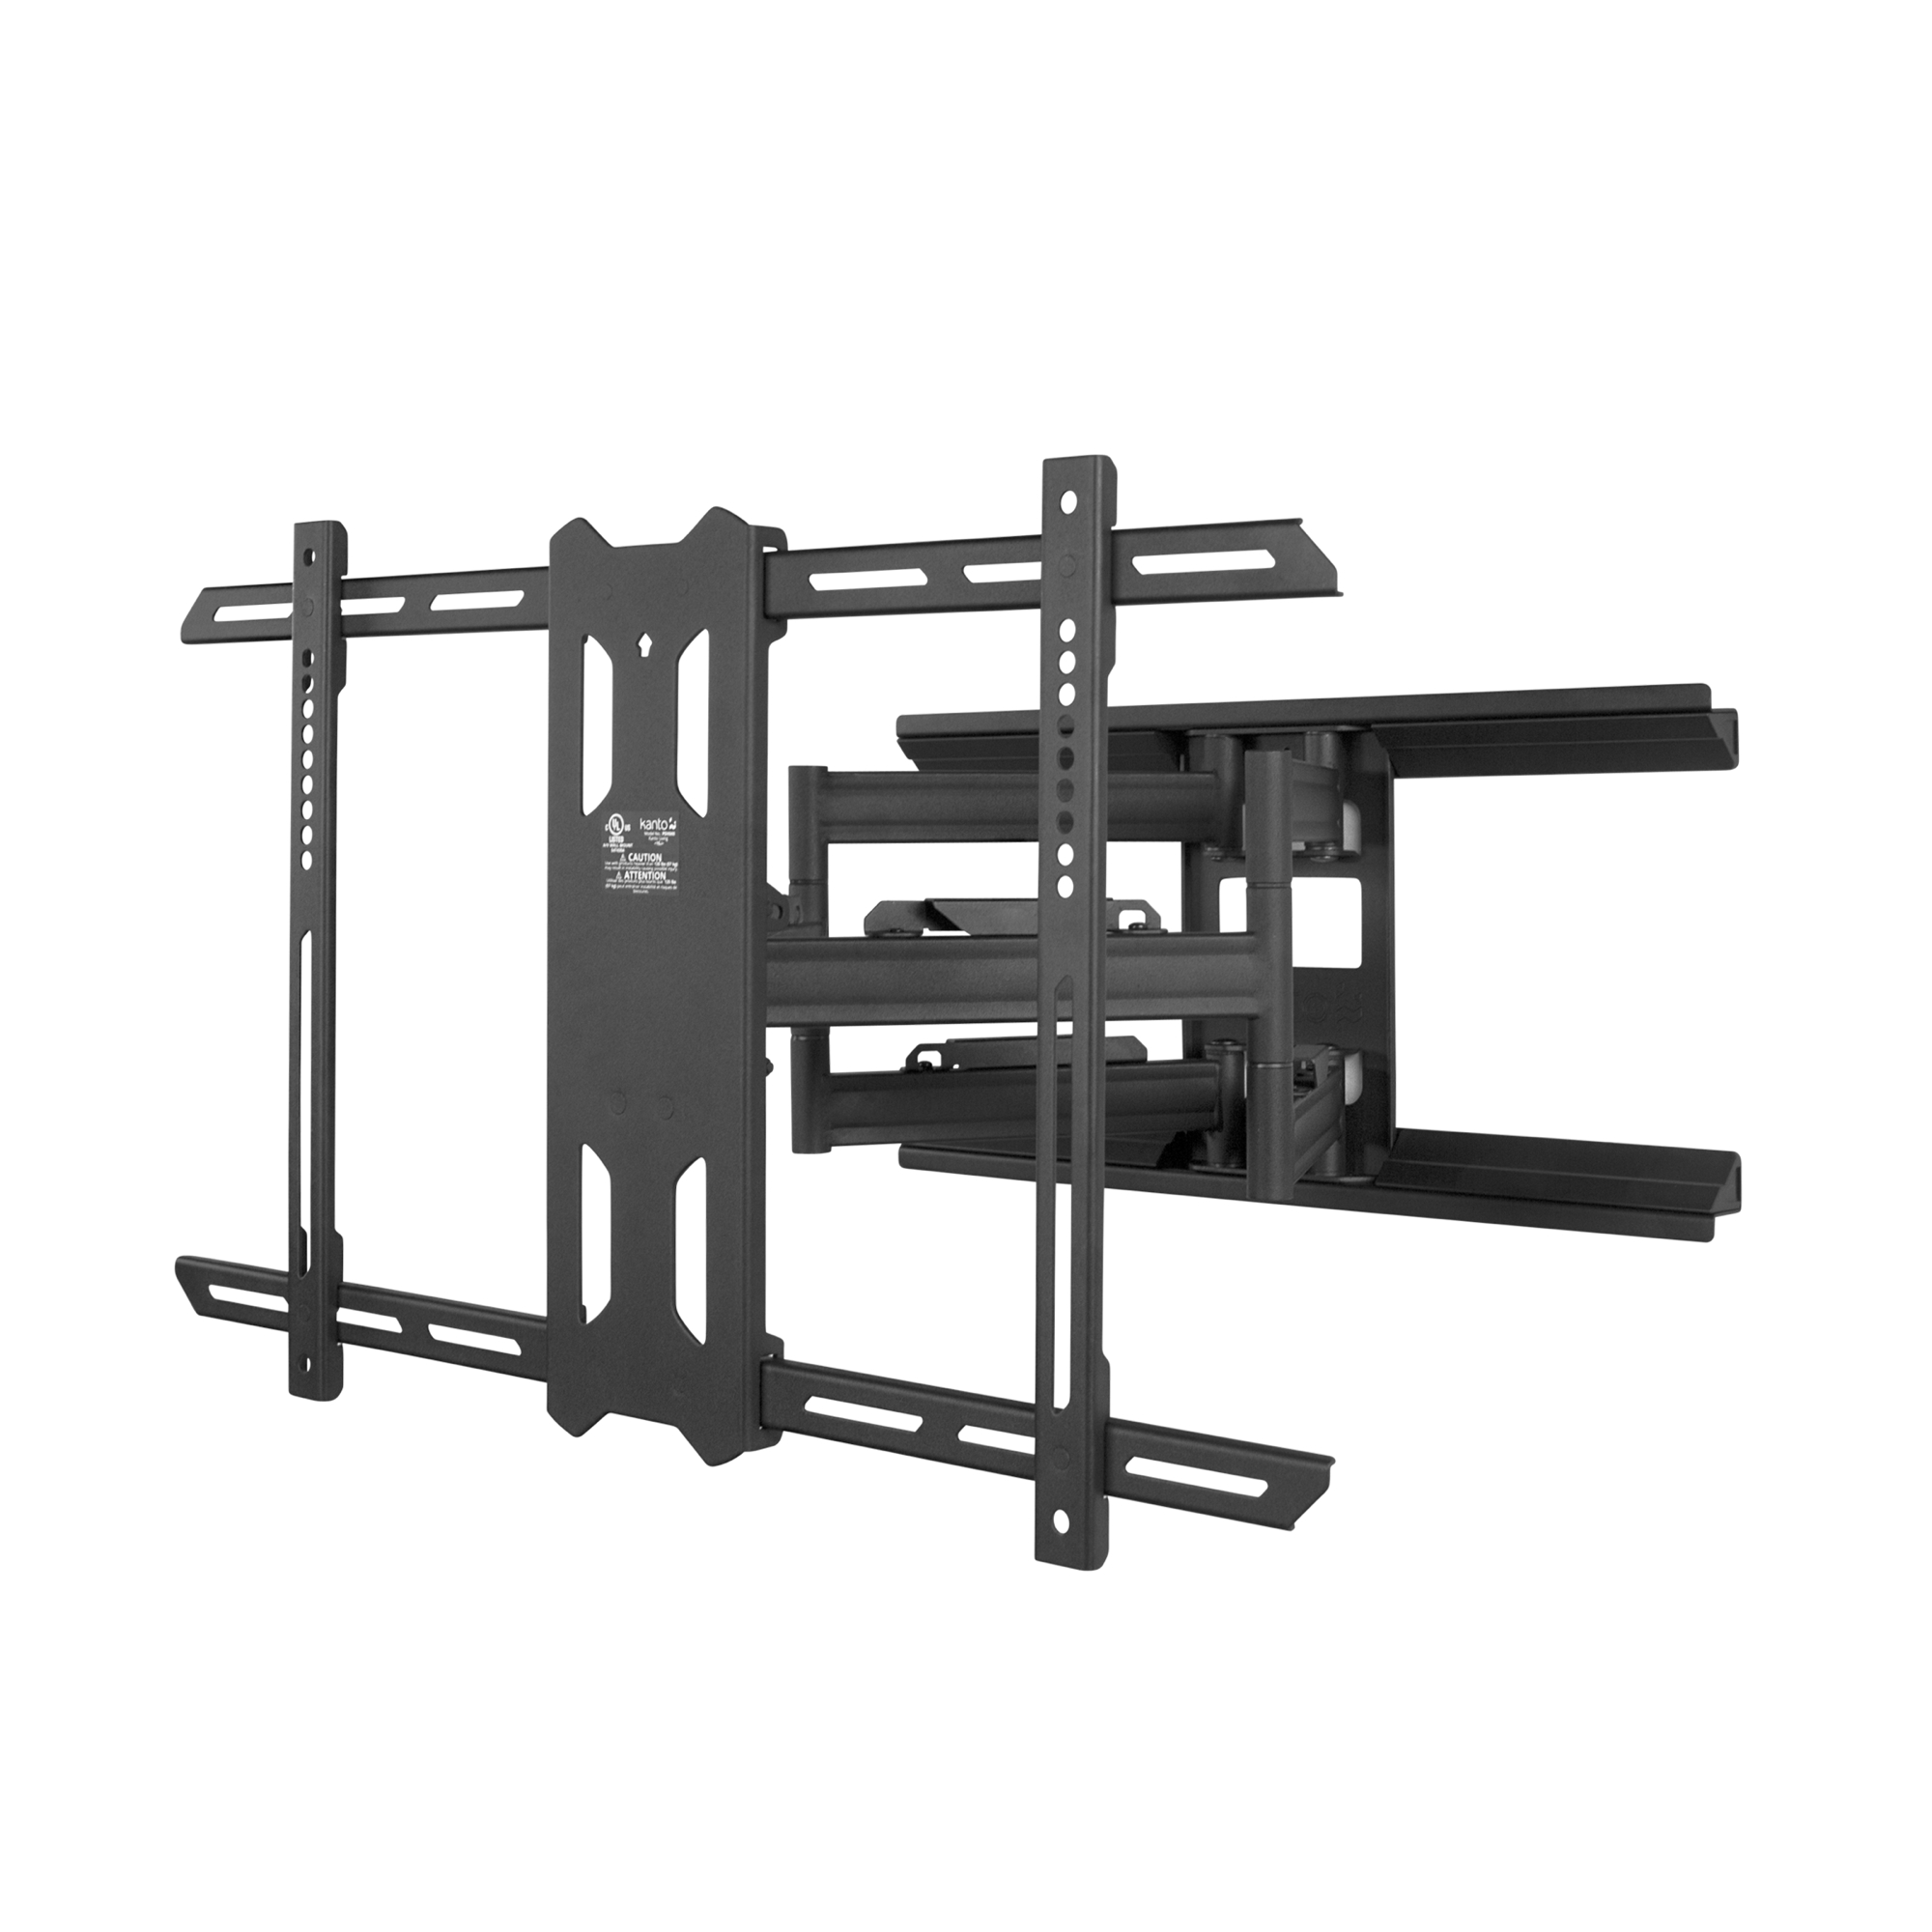 Kanto PDX660 Full Motion Mount for 37-inch to 75-inch TVs Black-Finish:Black by Kanto